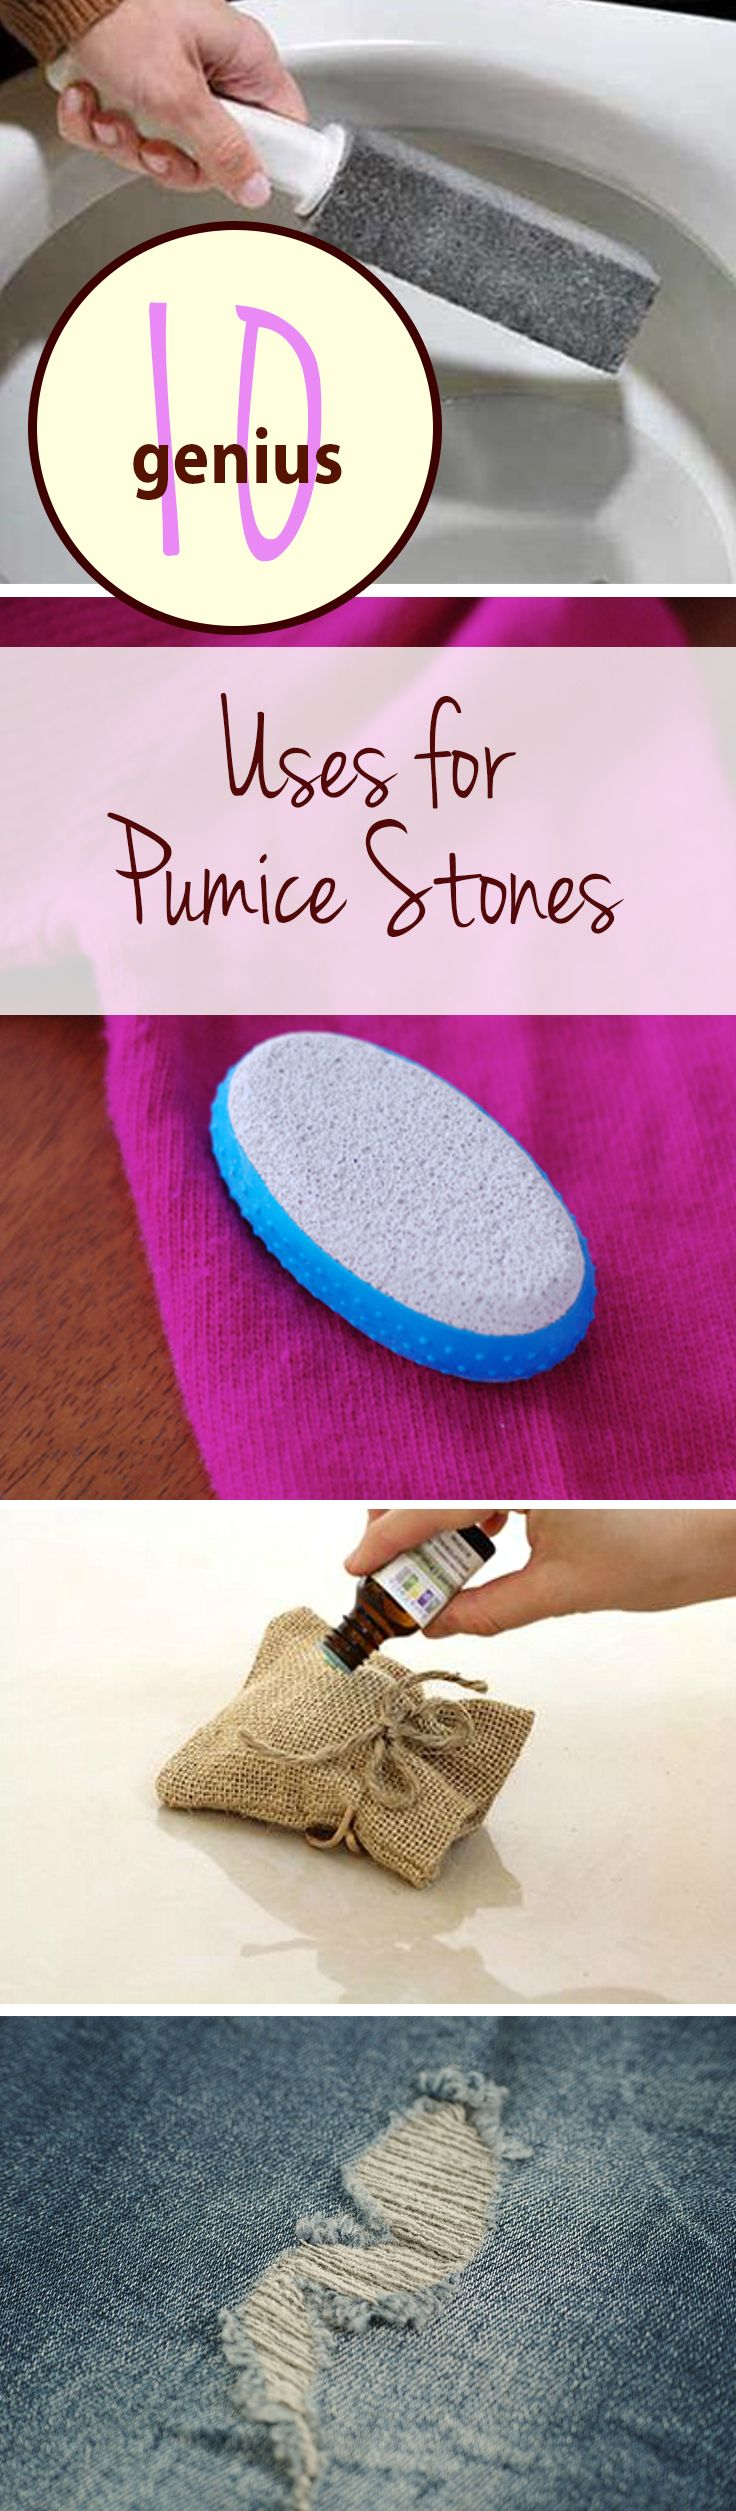 best useful tips images on pinterest beauty tricks freezer